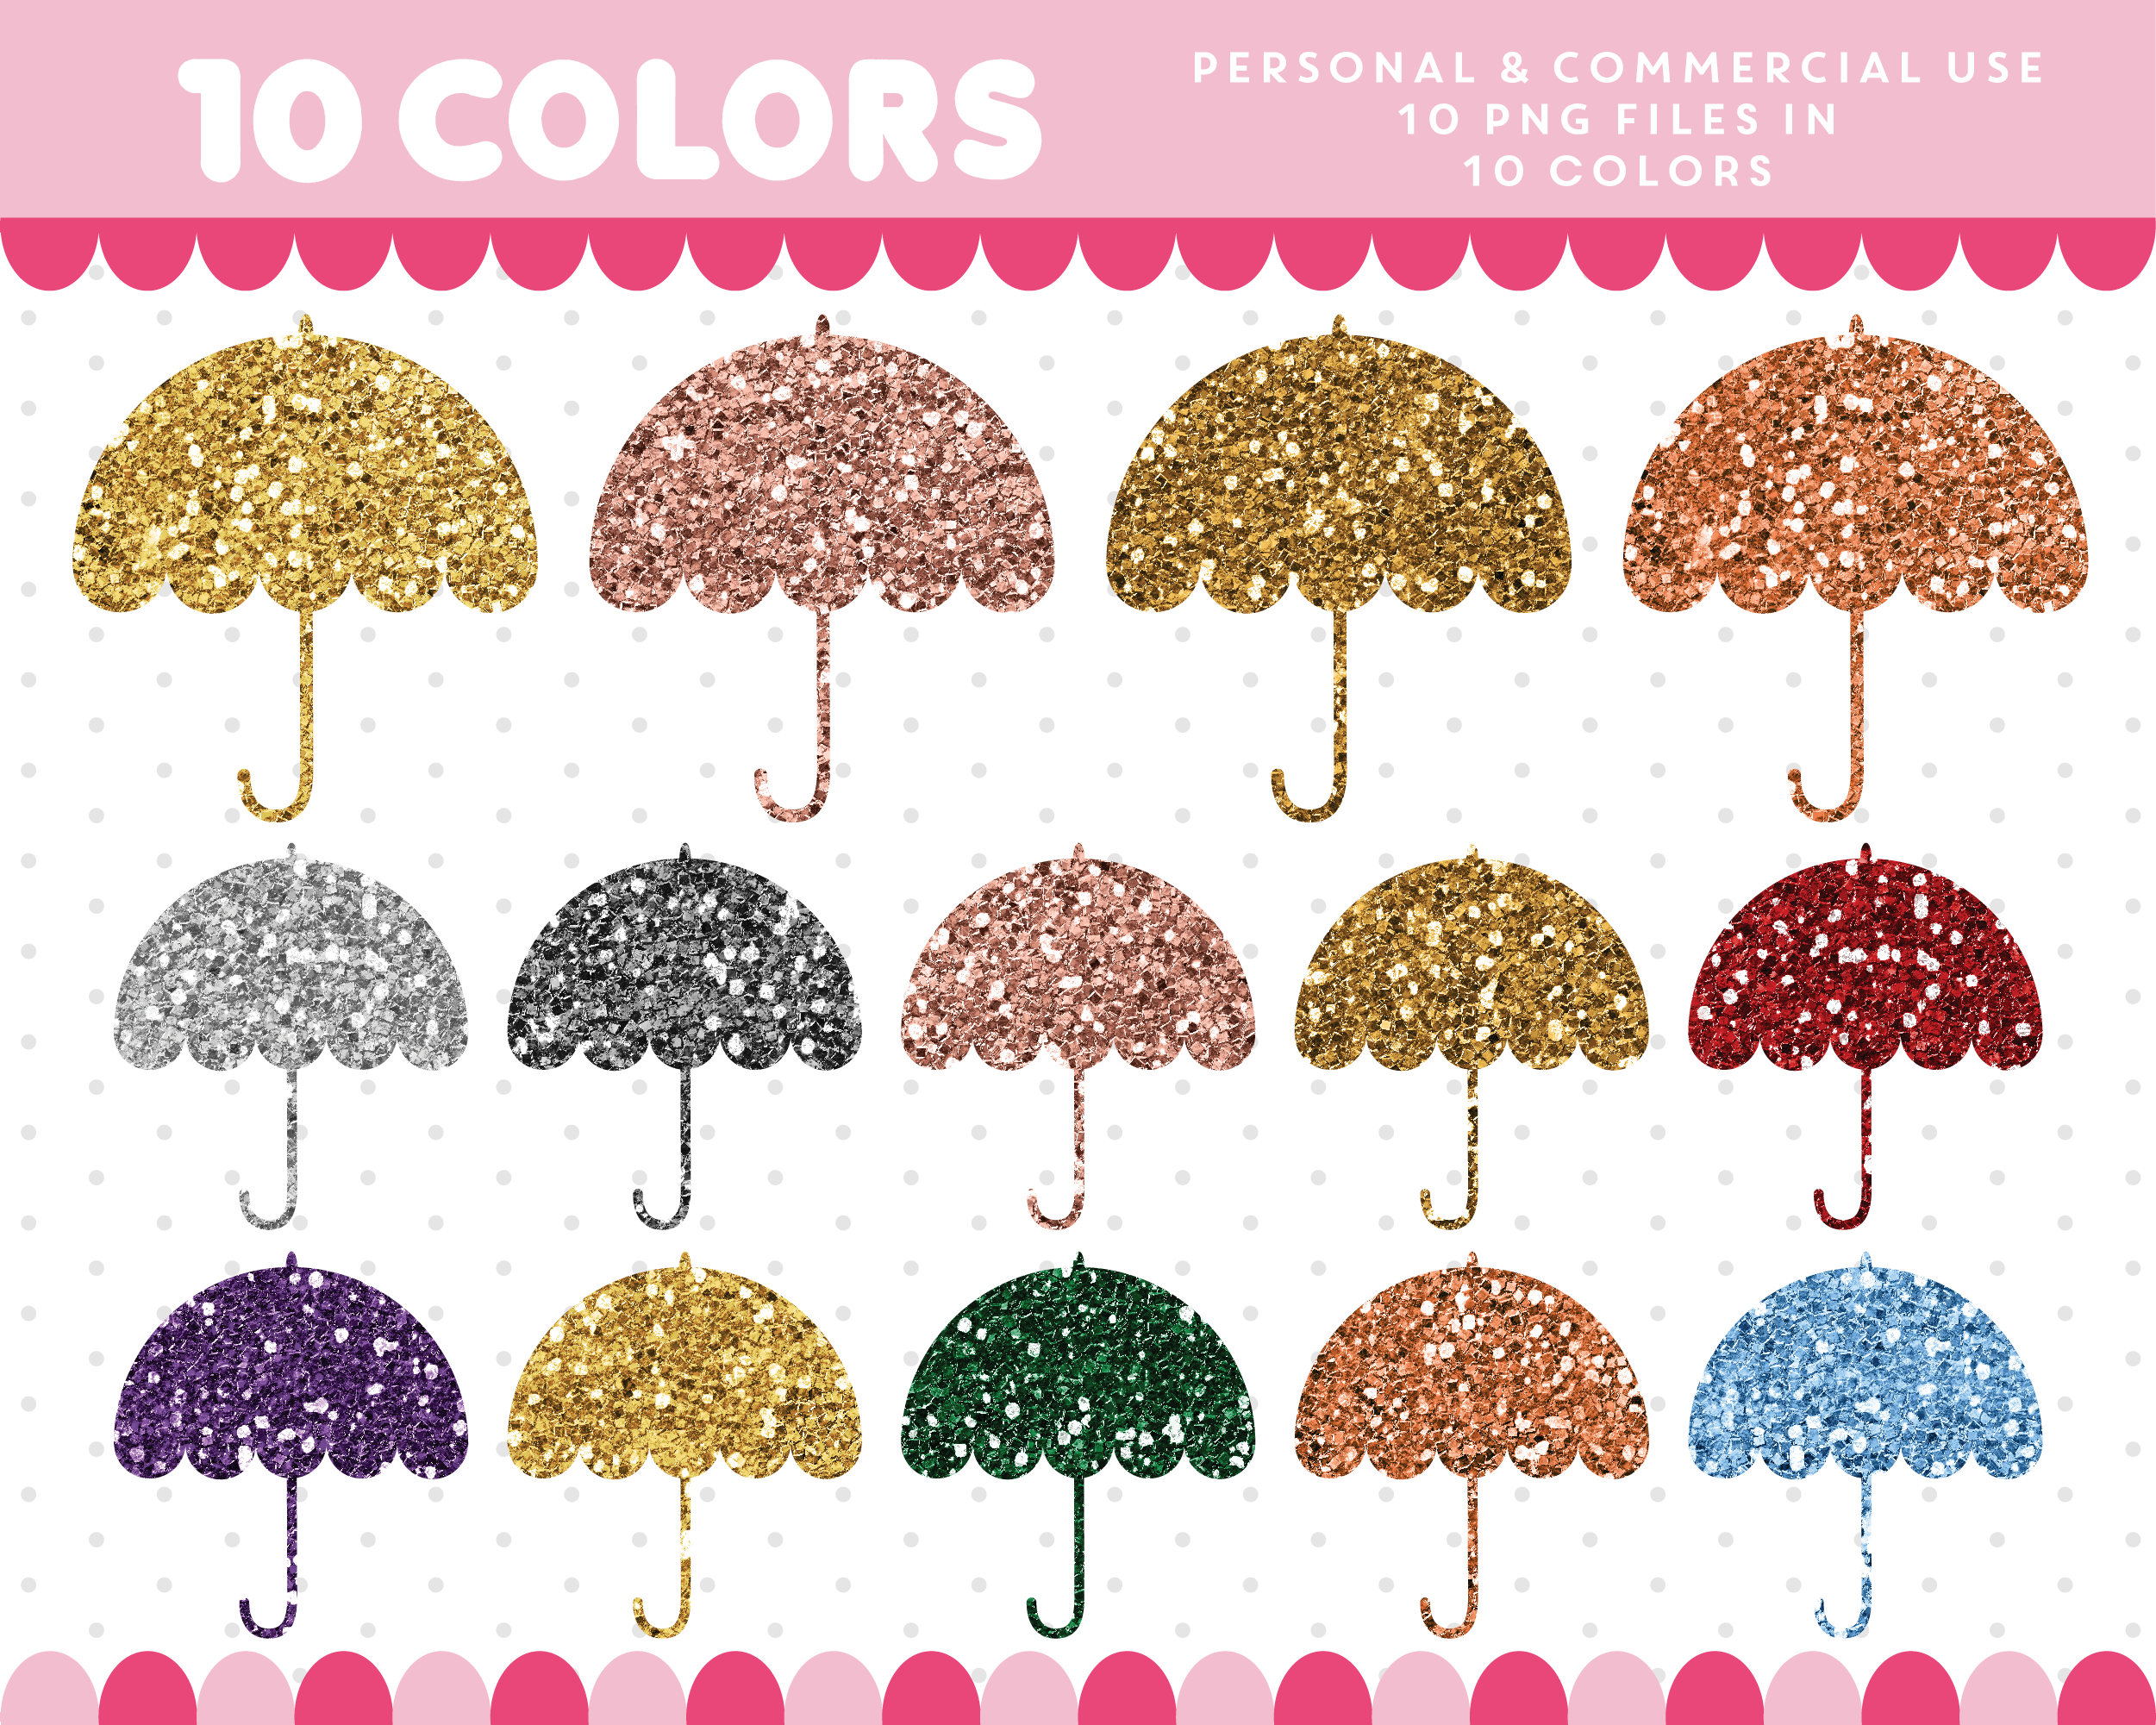 Umbrella clipart file. Glitter gold silver this